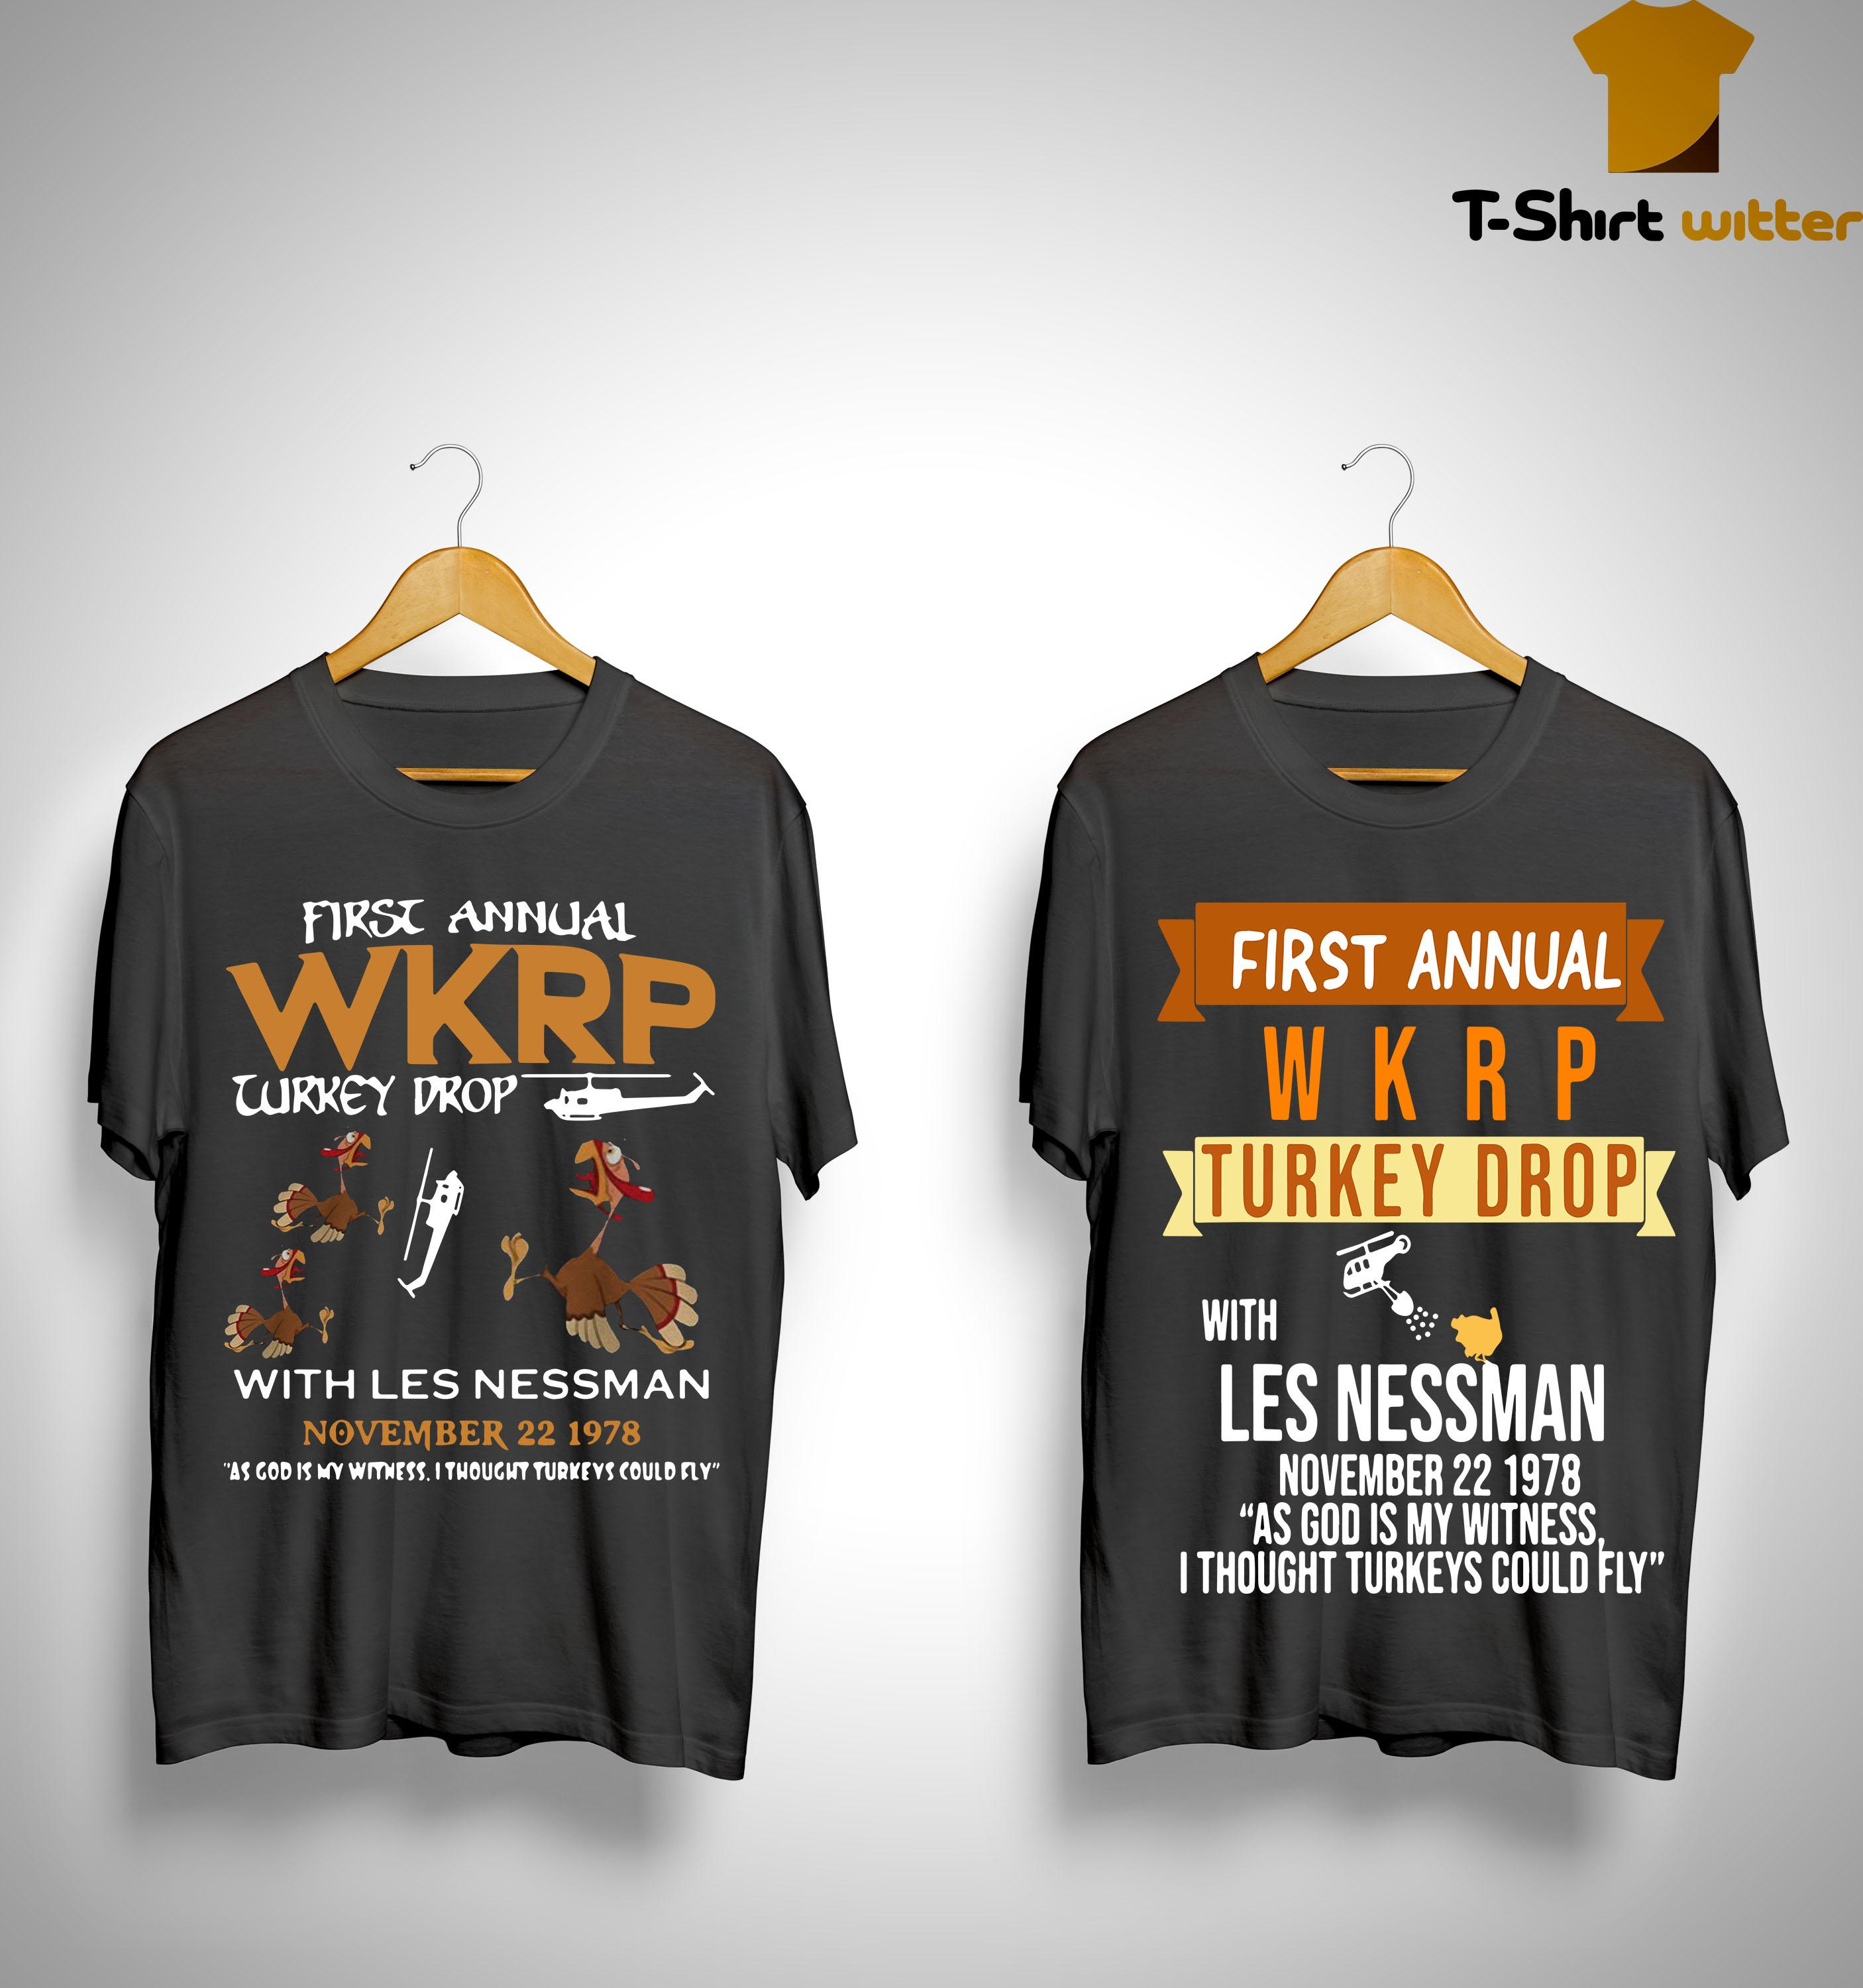 First Annual With Les Nessman November 22 1978 Wkrp Turkey Drop Shirt